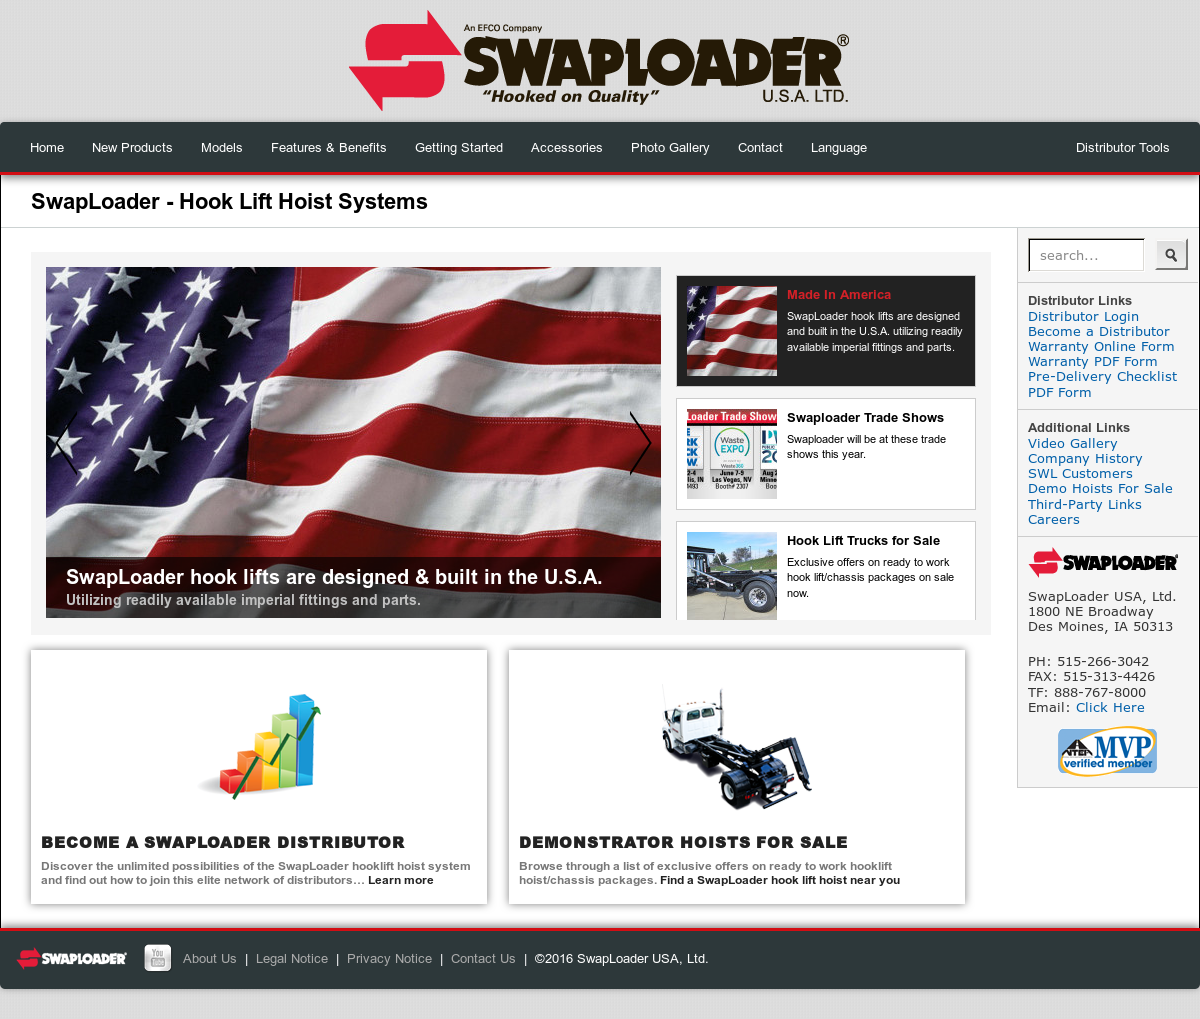 SwapLoader USA Competitors, Revenue and Employees - Owler Company